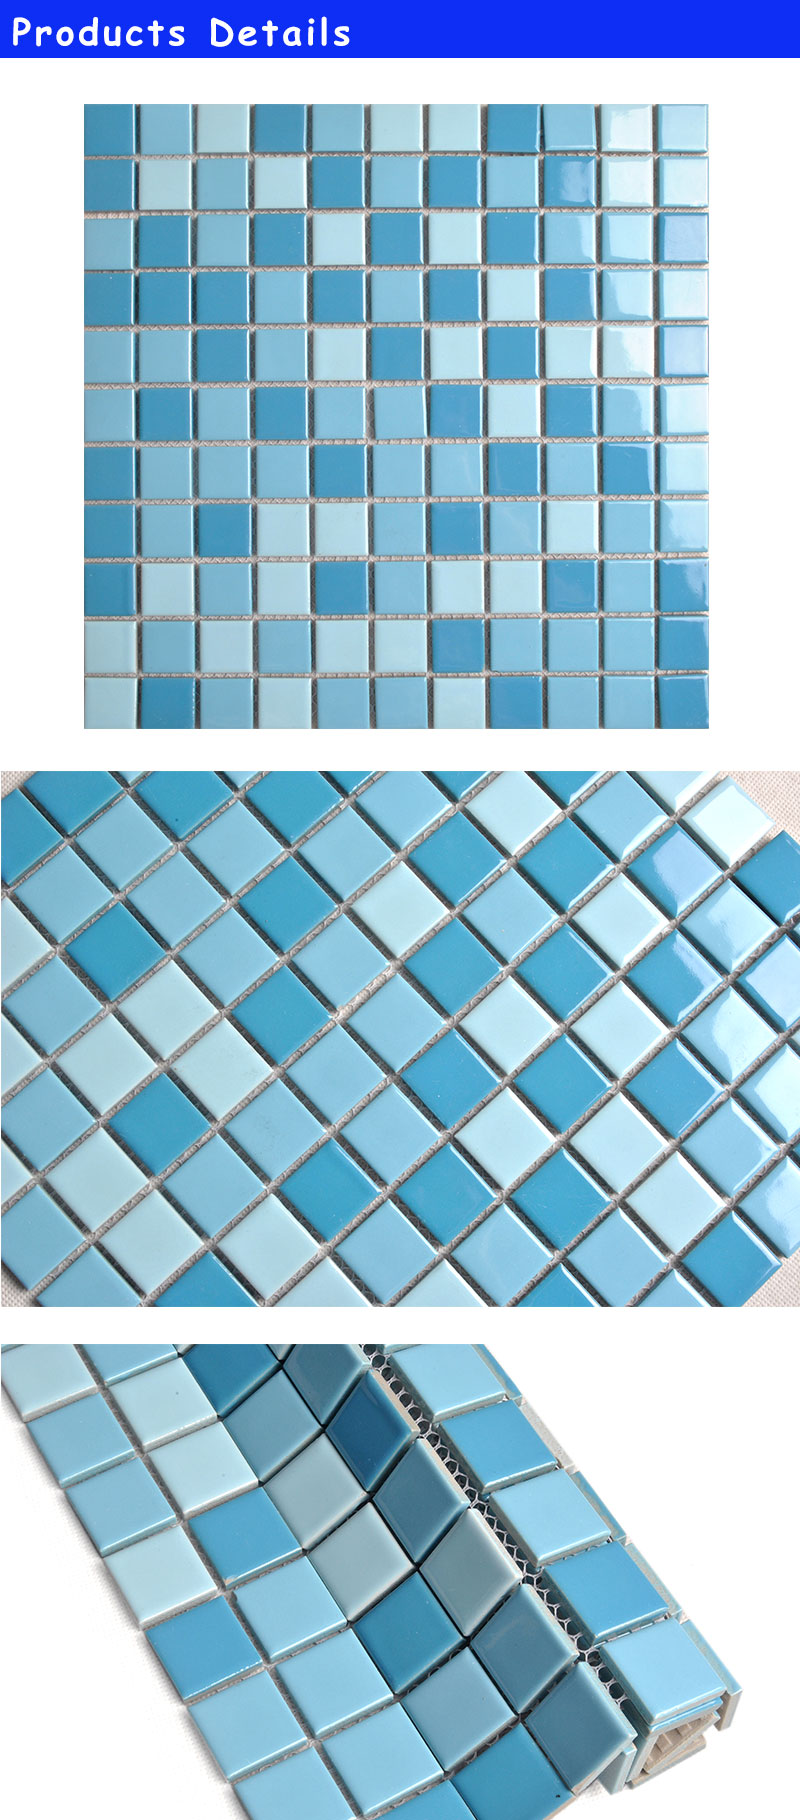 K288H3B 2016 25X25mm square swiming pool ceramics mosaic tiles